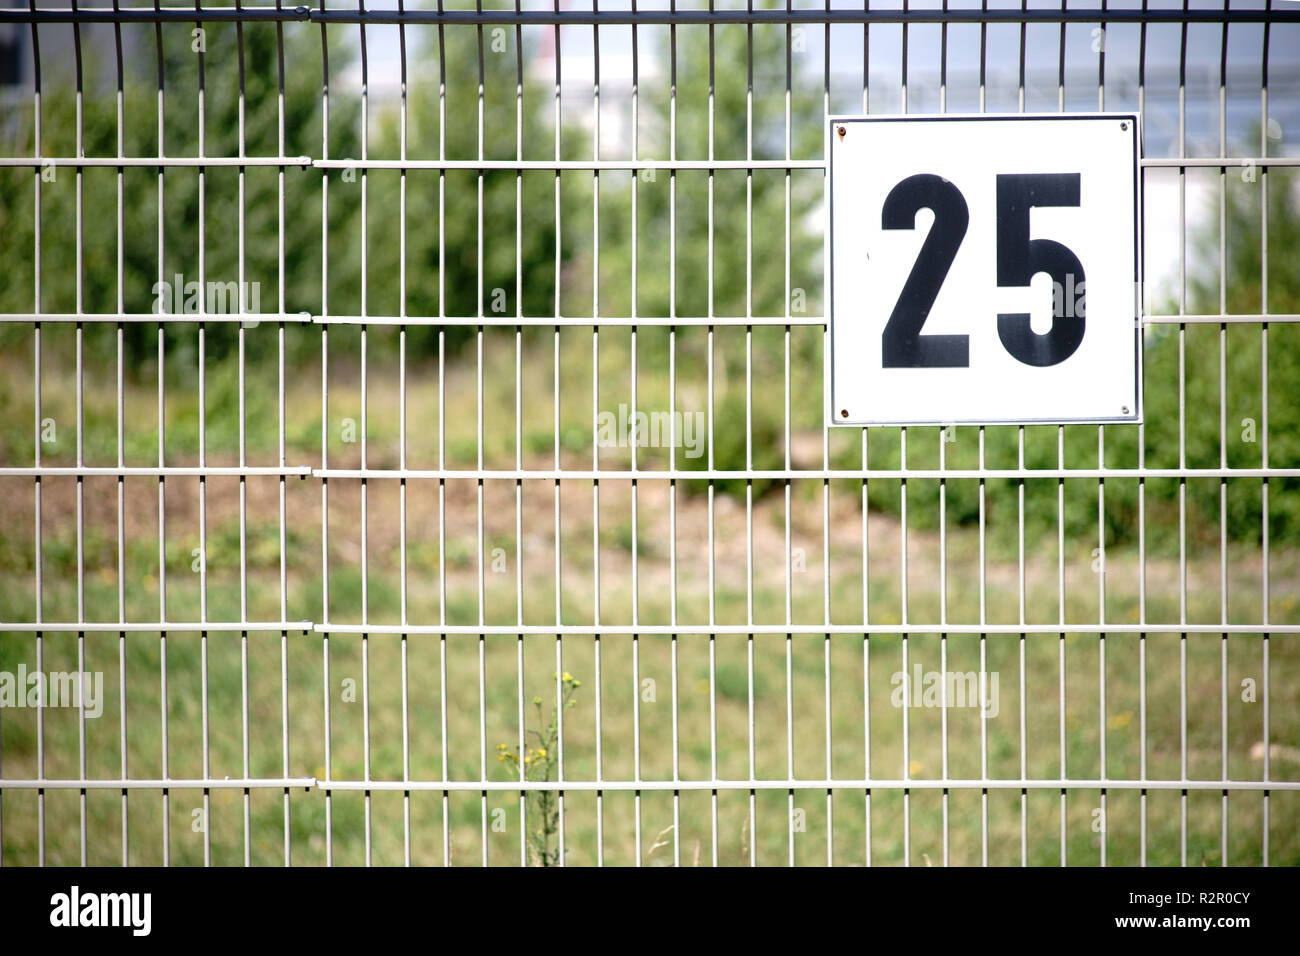 Fence, detail, with number of the fenced plot - Stock Image